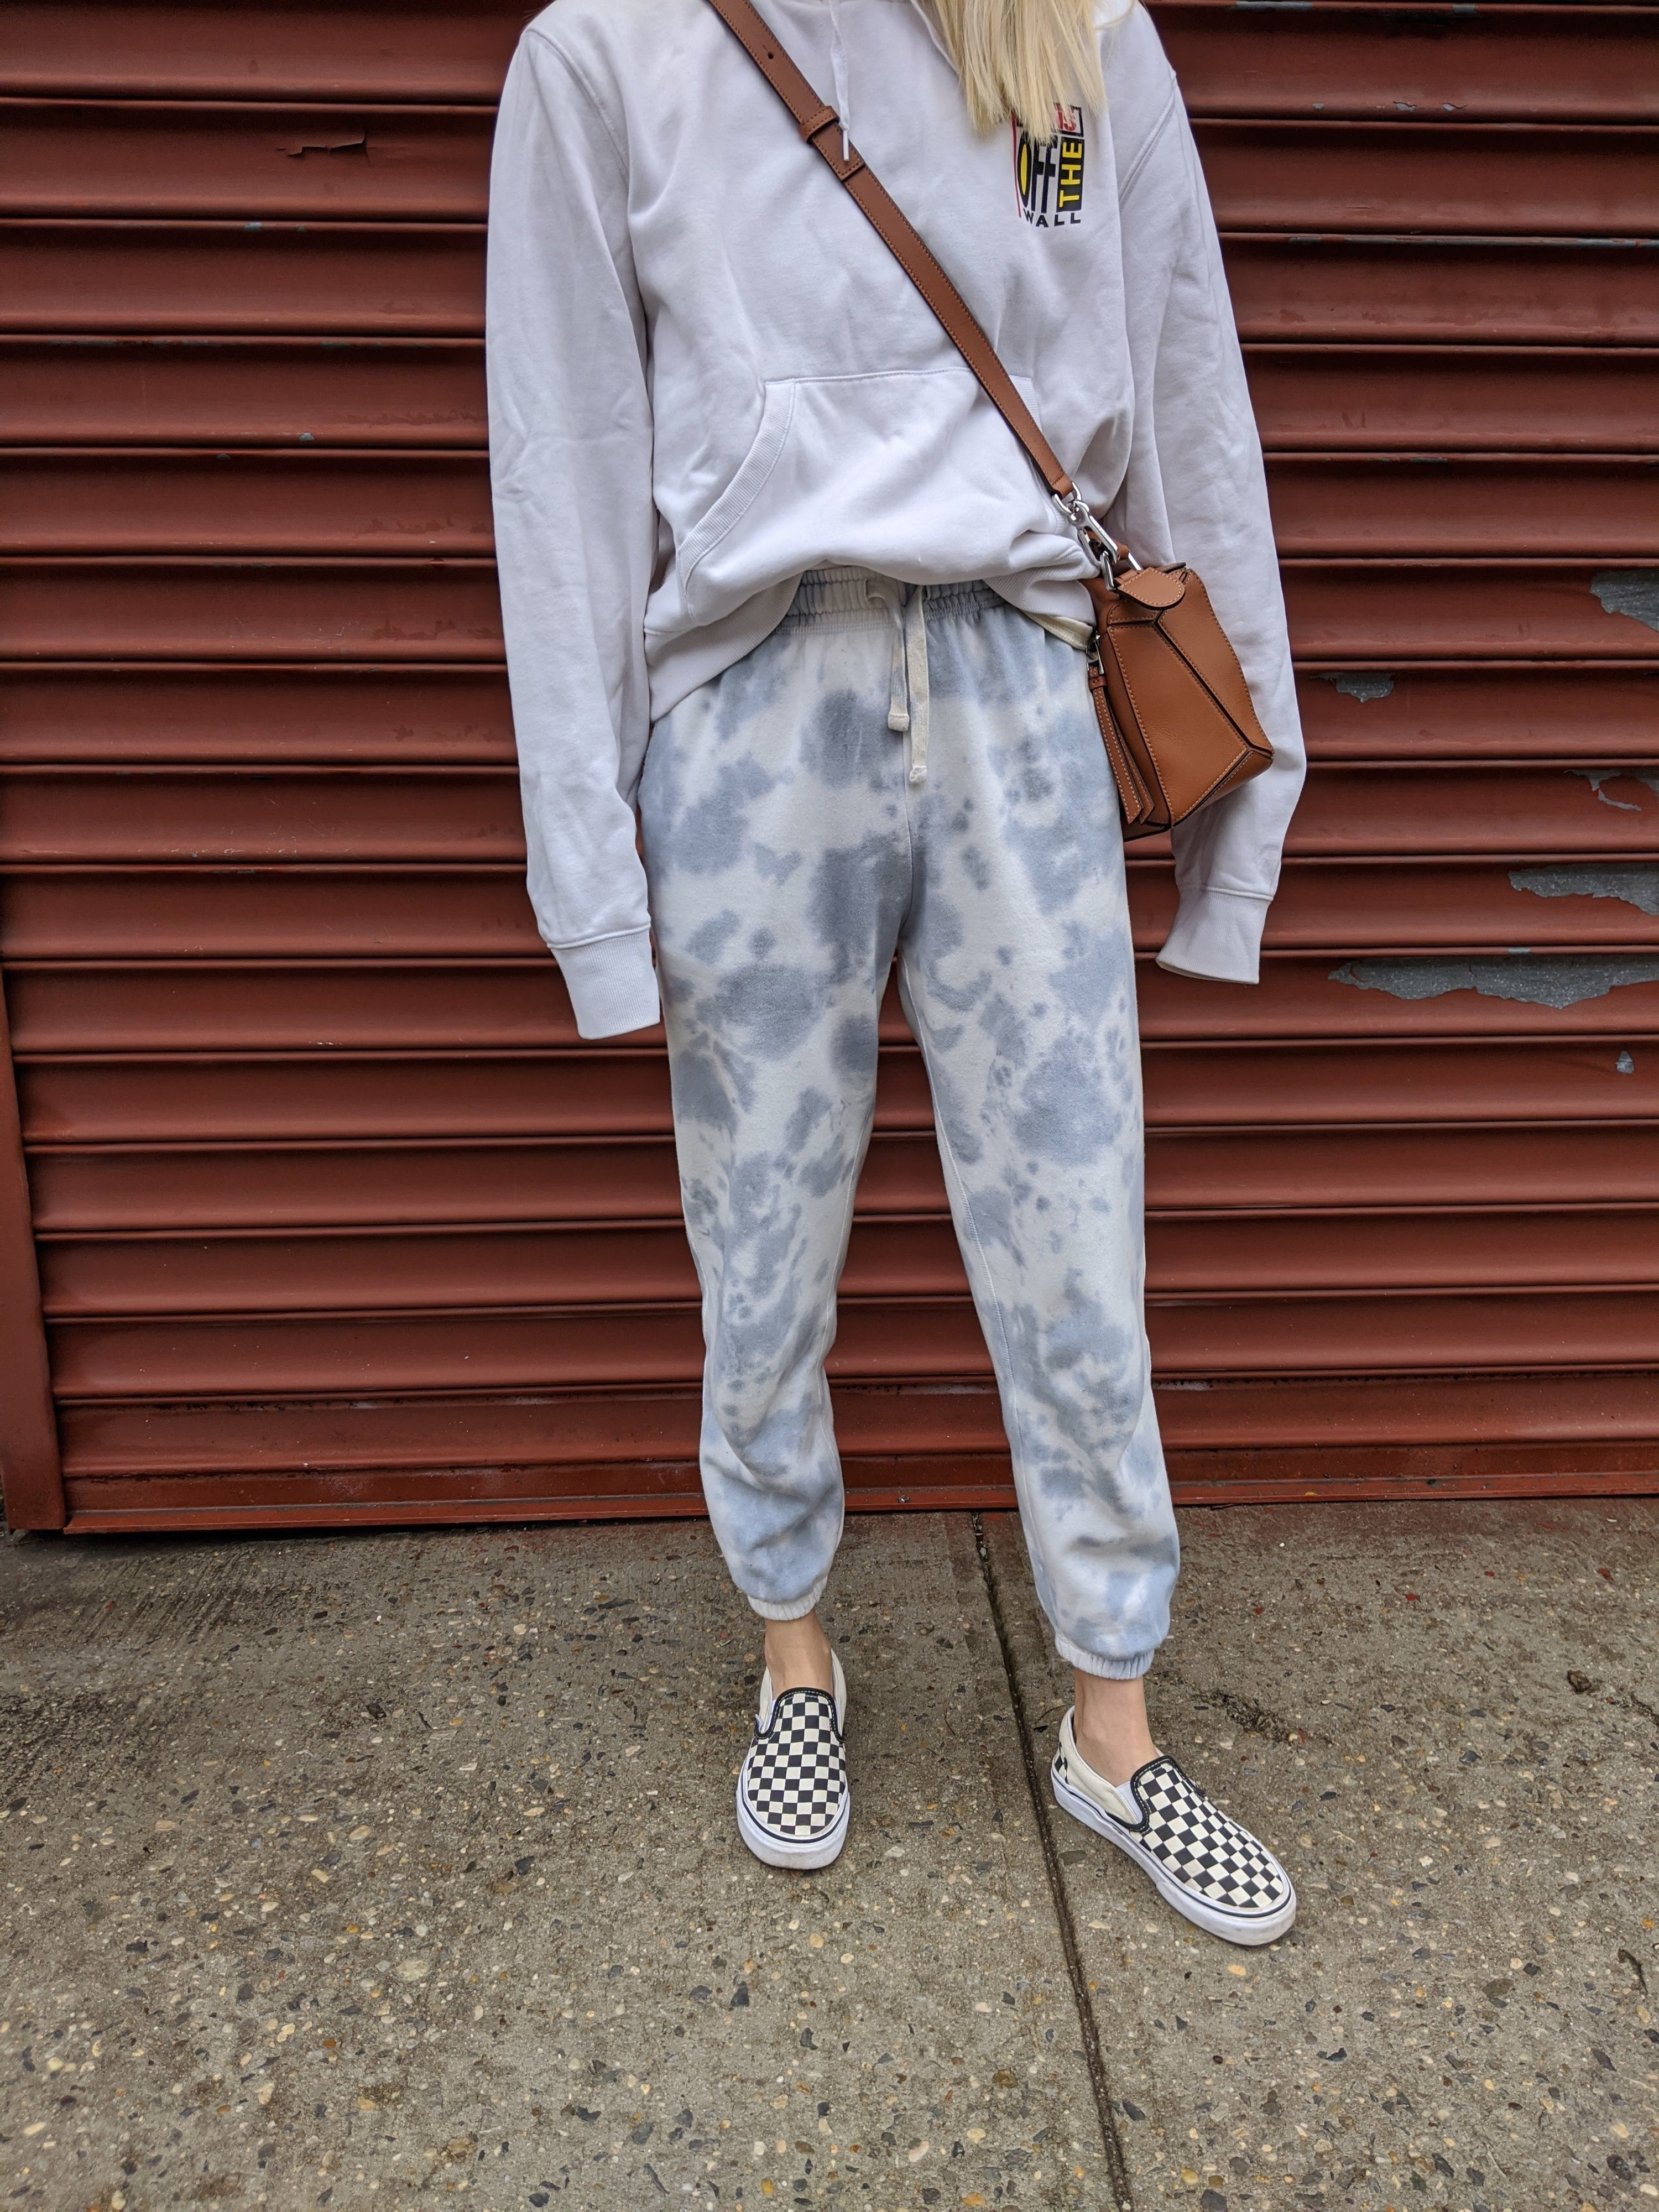 buzzfeed editor in light and medium blue tie-dye sweatpant joggers with a waist tie